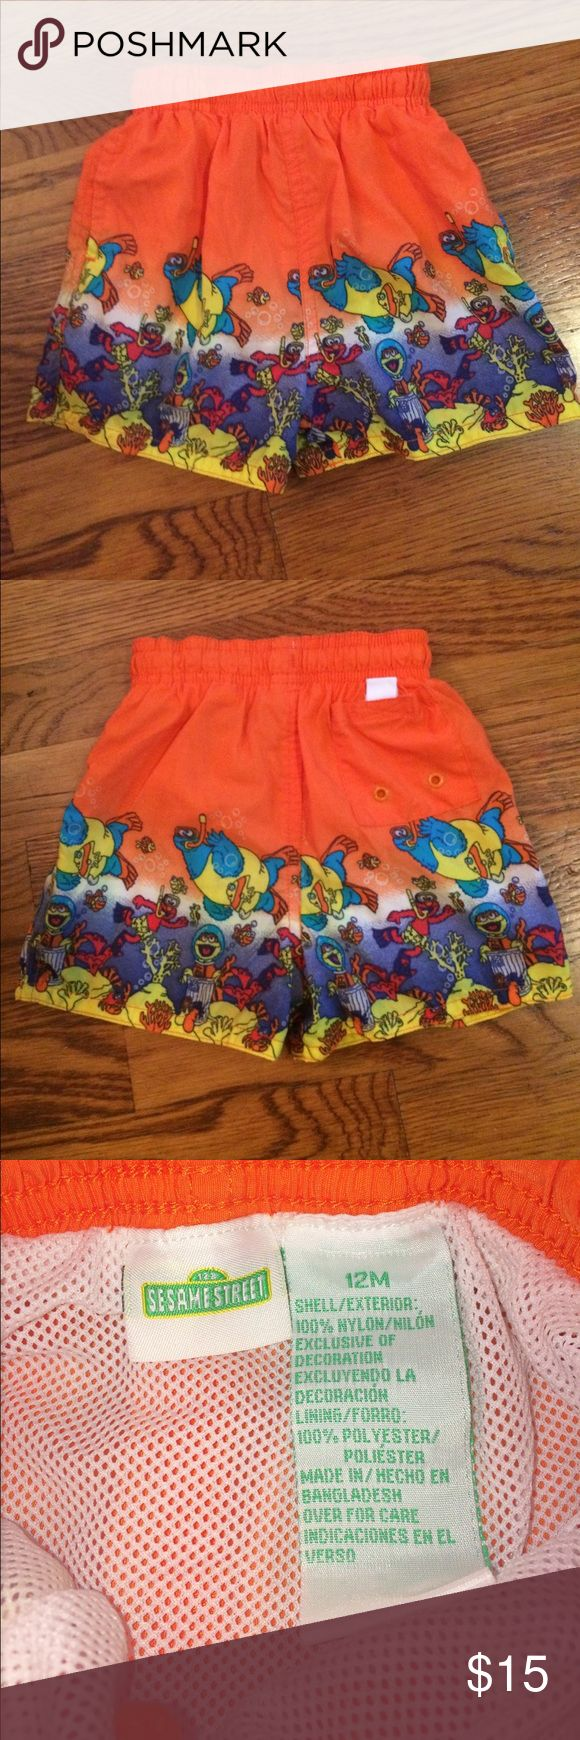 Boys Sesame Street 12mos Bathing Suit For sale is a infant boys 12 month Sesame Street bathing suit. It is in very good condition. There is one small wear mark. Thank you and have a blessed day! Sesame Street Swim Swim Trunks